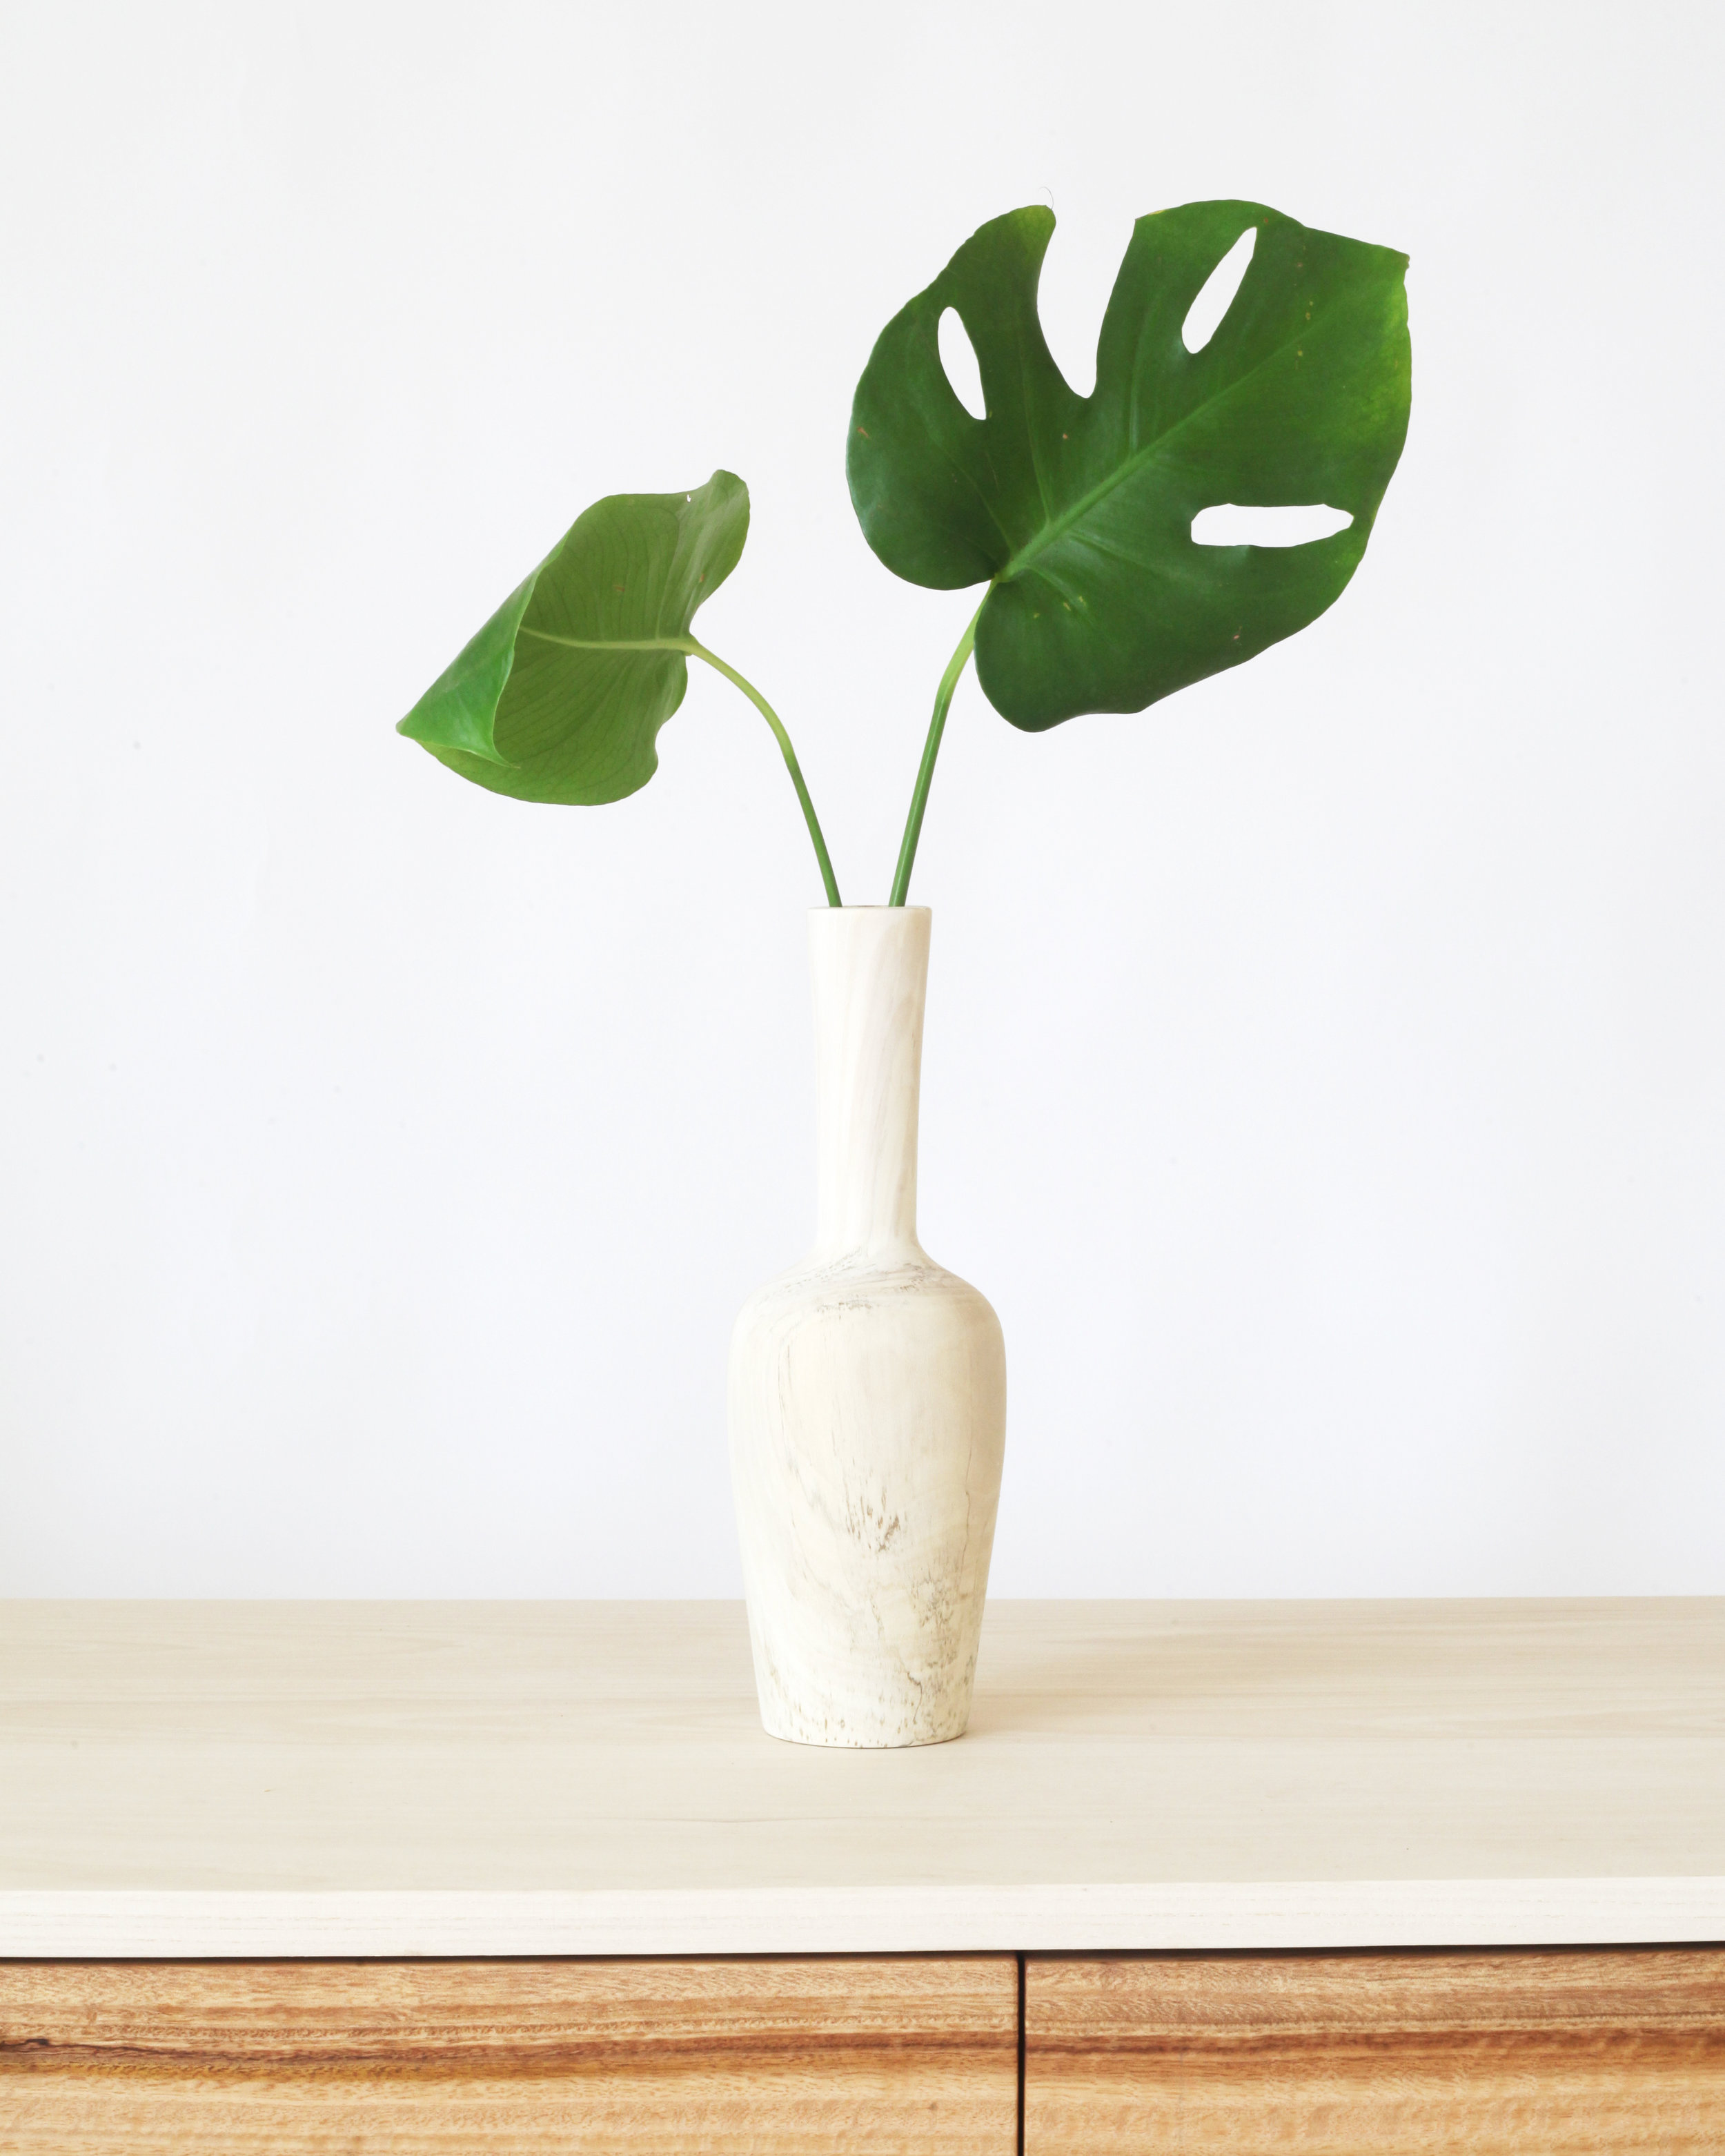 Vase-  Bleached sycamore